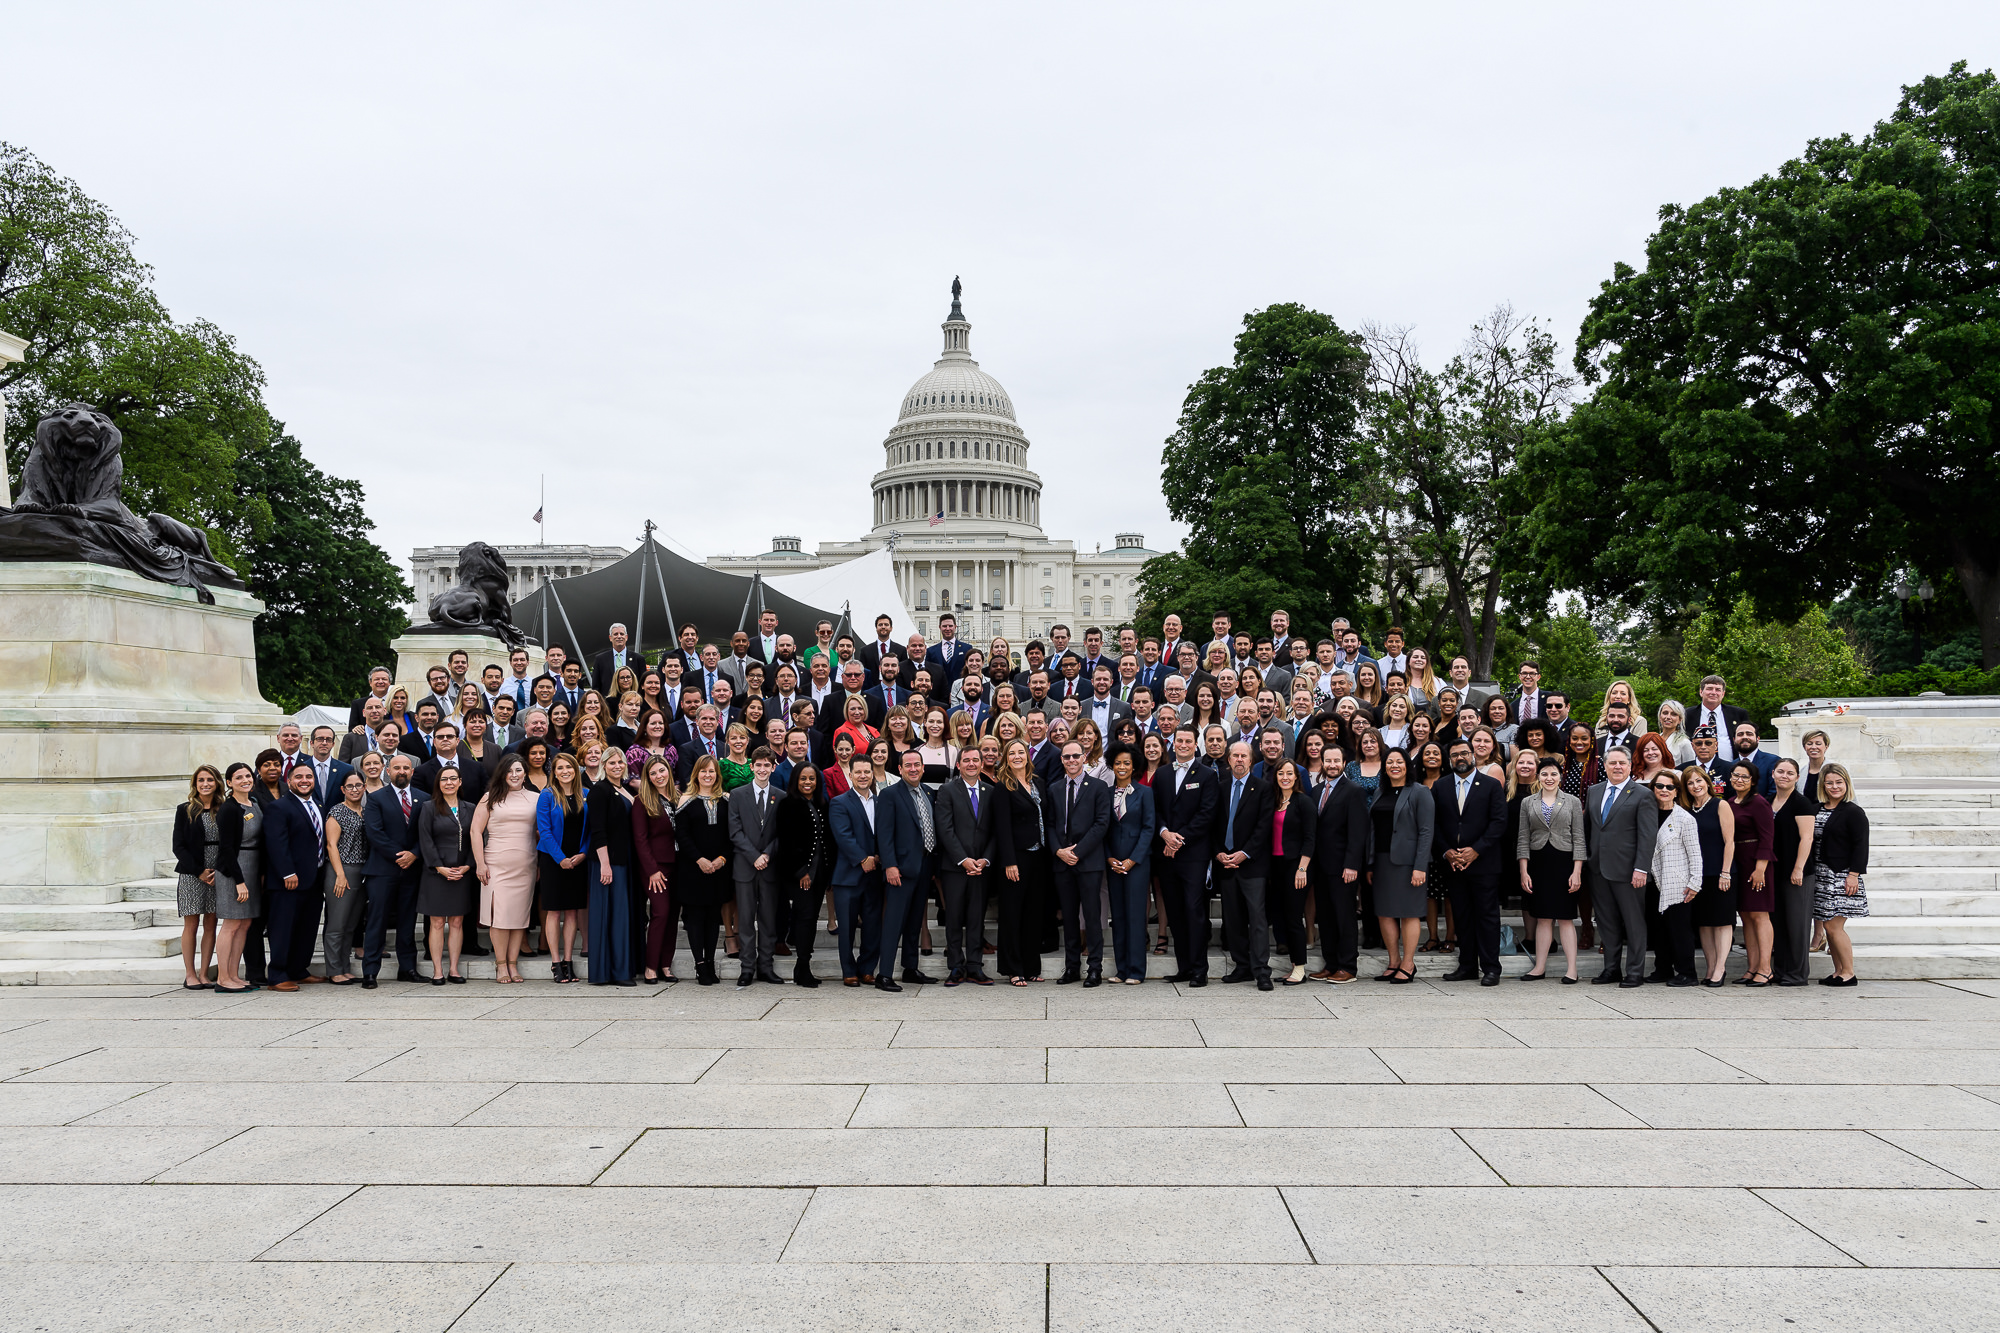 013-Christopher-Jason-Studios-national-cannabis-industry-assocition-washington-dc-event-photography-conference-group-takes-photo-in-front-of-capitol-building.jpg